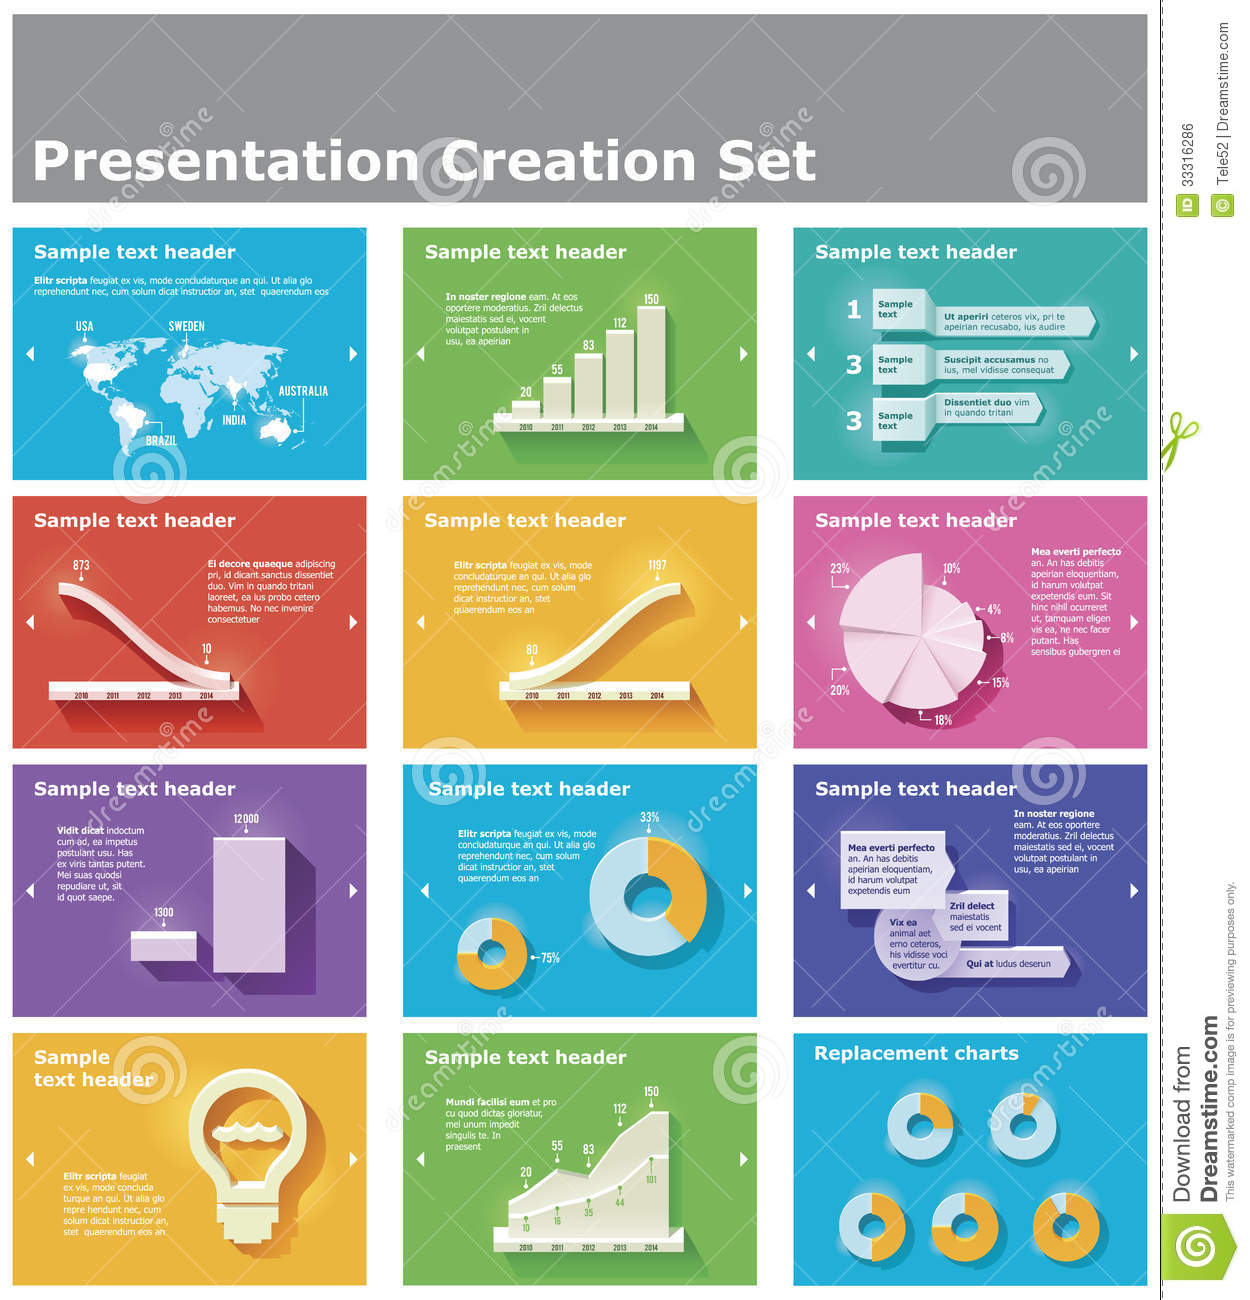 an introduction to the world of graphic design and the presentation and time management in business In this course, staff author and designer justin seeley shares graphic design secrets anyone can apply to make their business documents look great no graphic design knowledge necessary justin breaks graphic design into an easy-to-follow acronym, parc, or proximity, alignment, repetition, and contrast, and shows how to apply these principles to everyday design challenges.